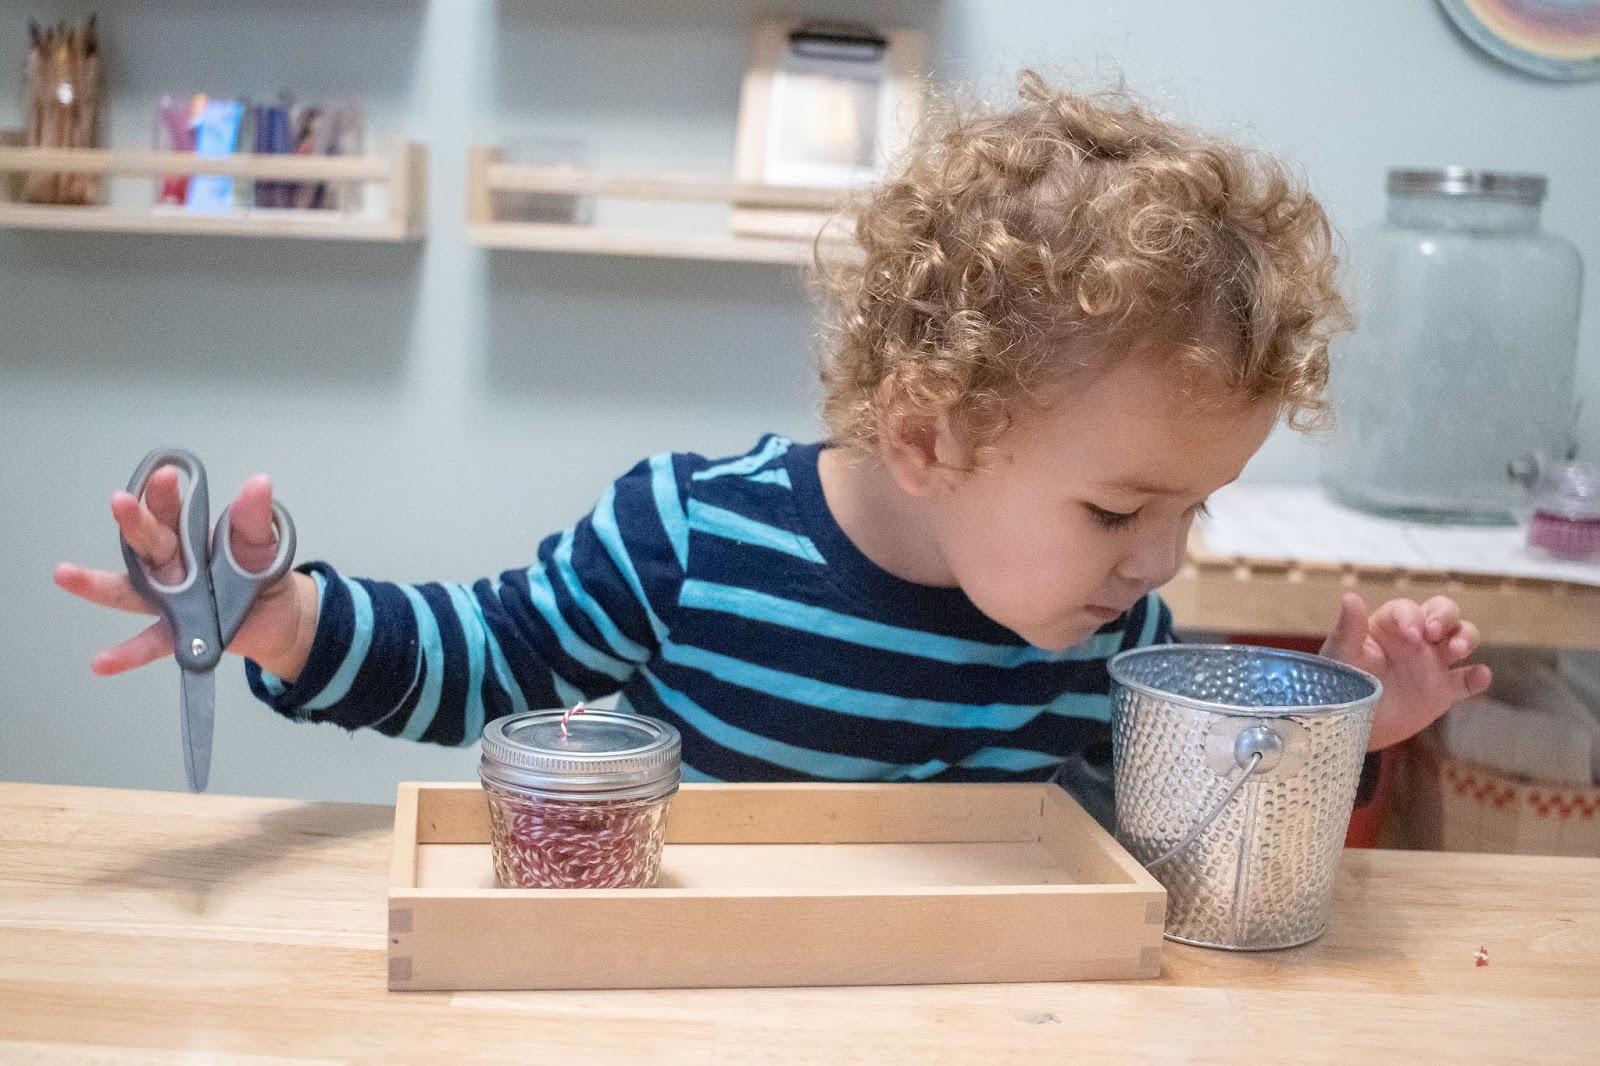 An easy Montessori inspired snipping work for toddlers.